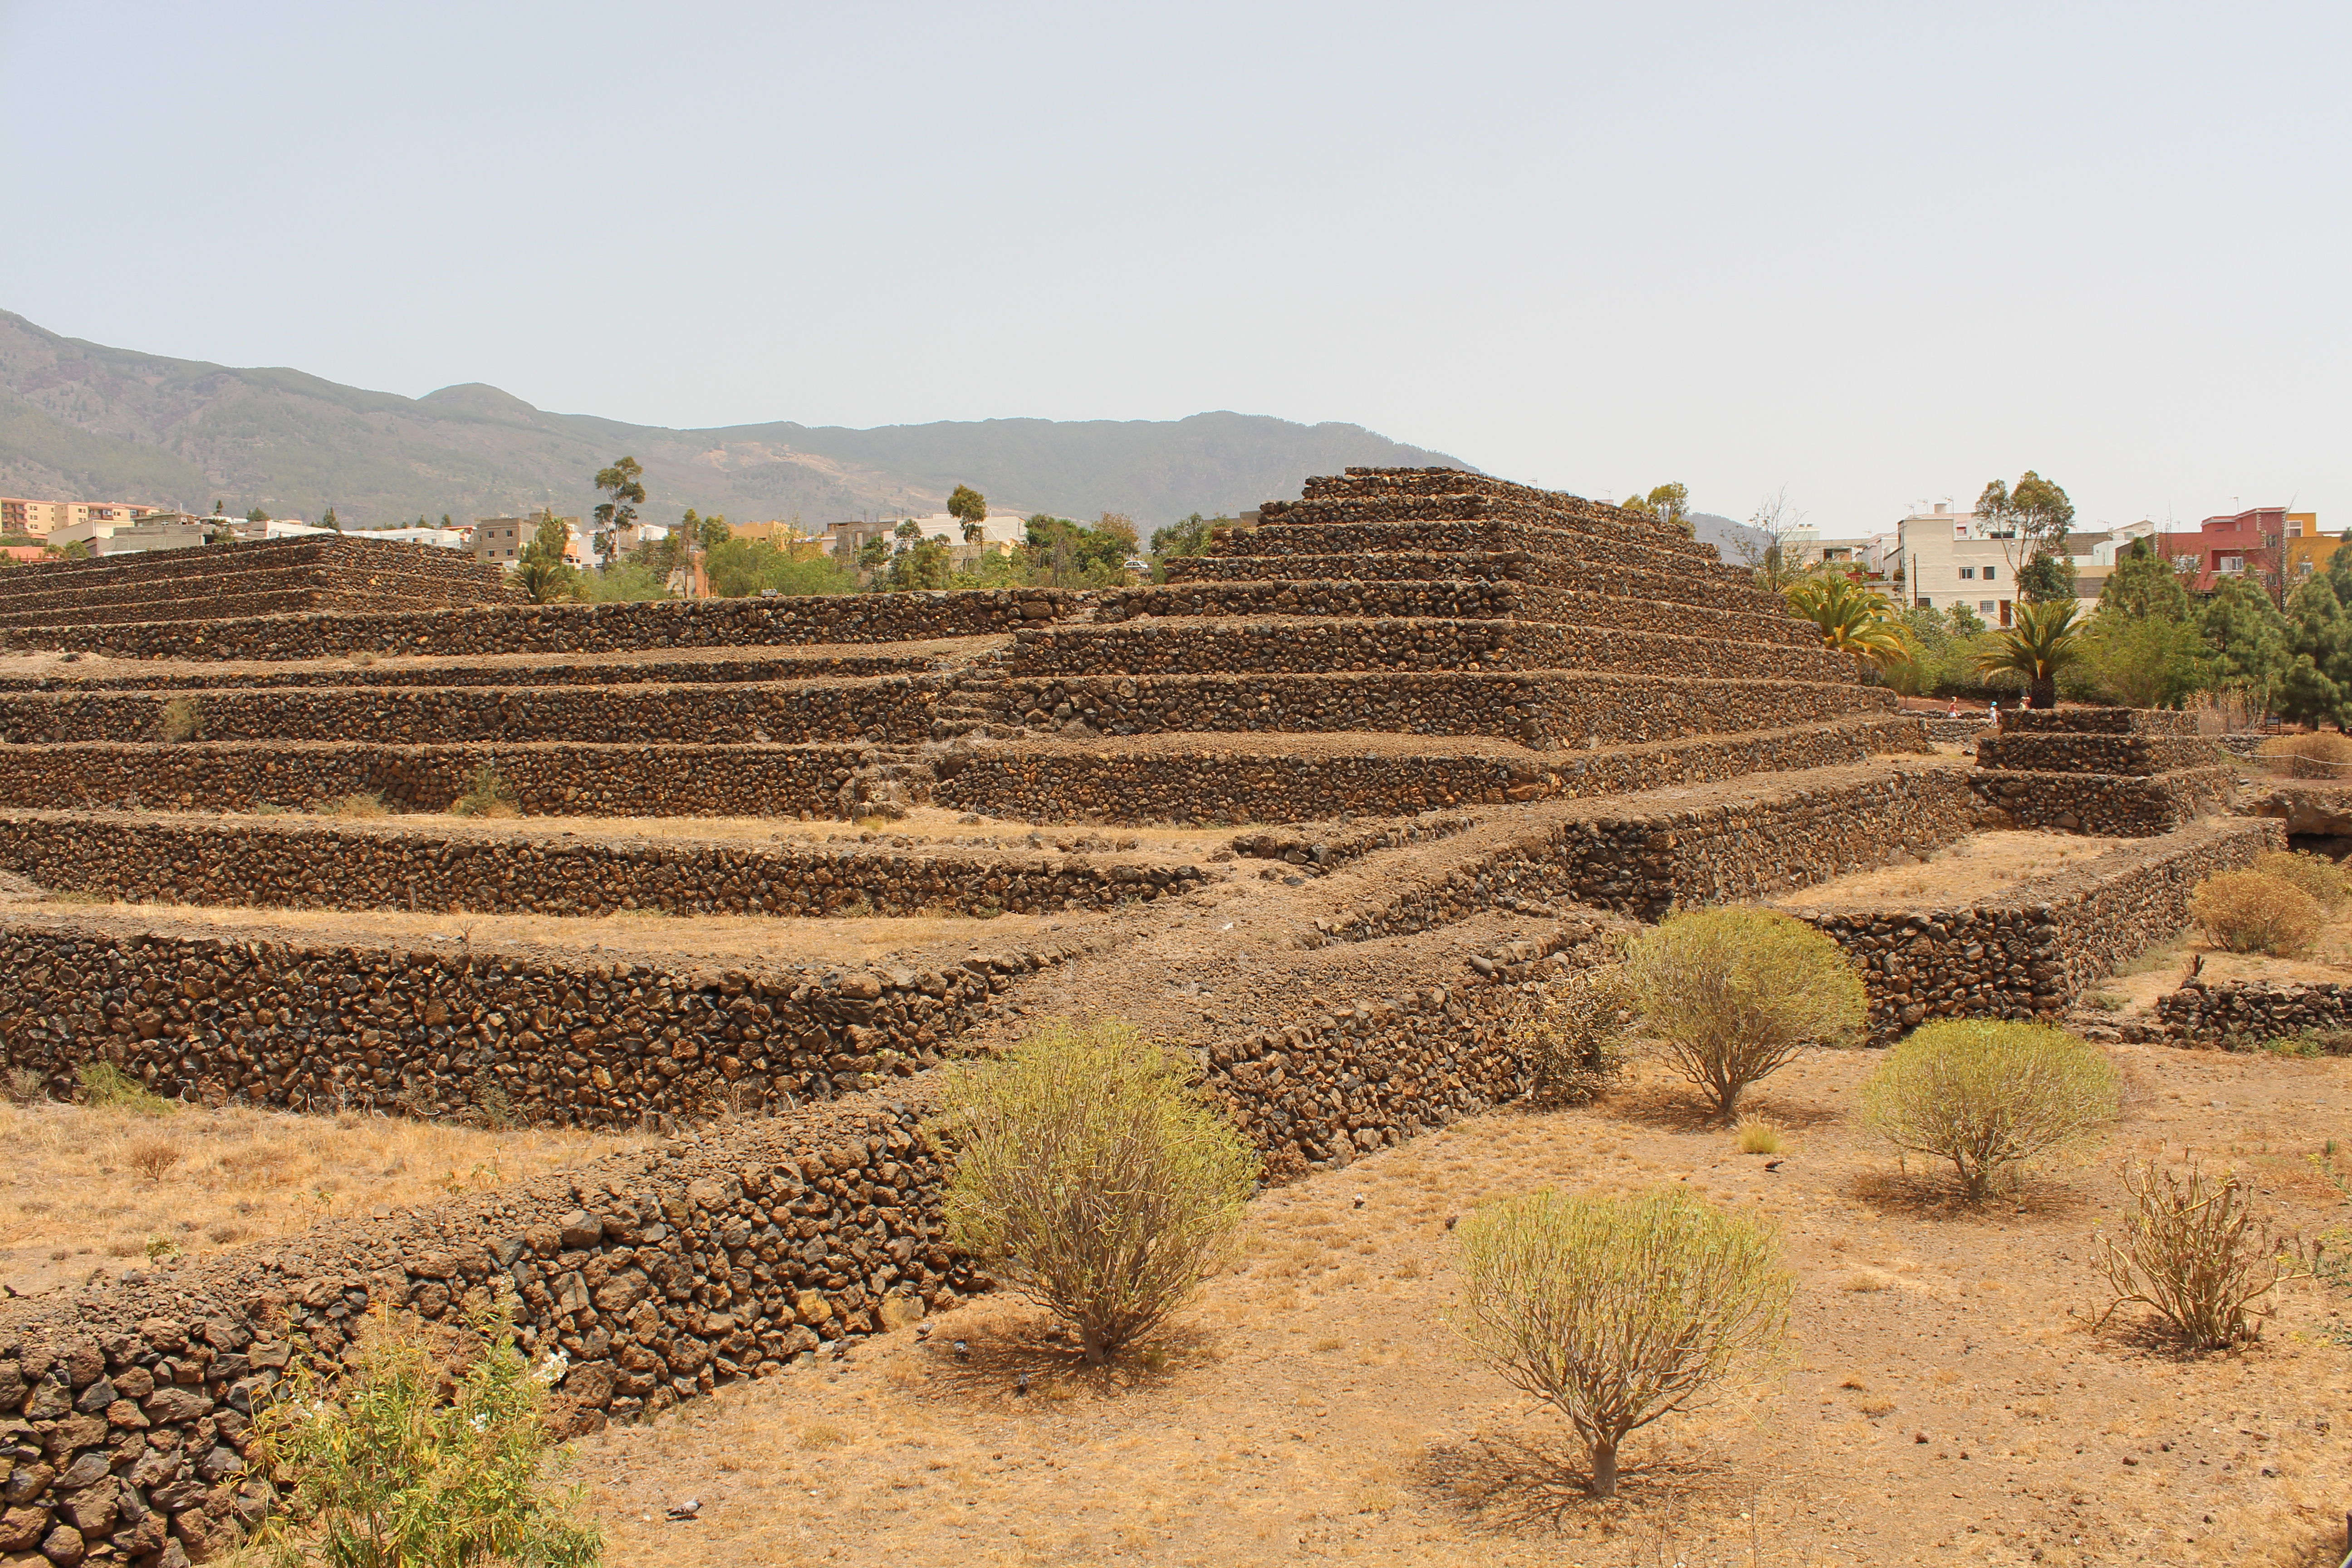 Stone rectangular pyramid set amongst a barren landscape but close to civilisation with houses just visible in th background.